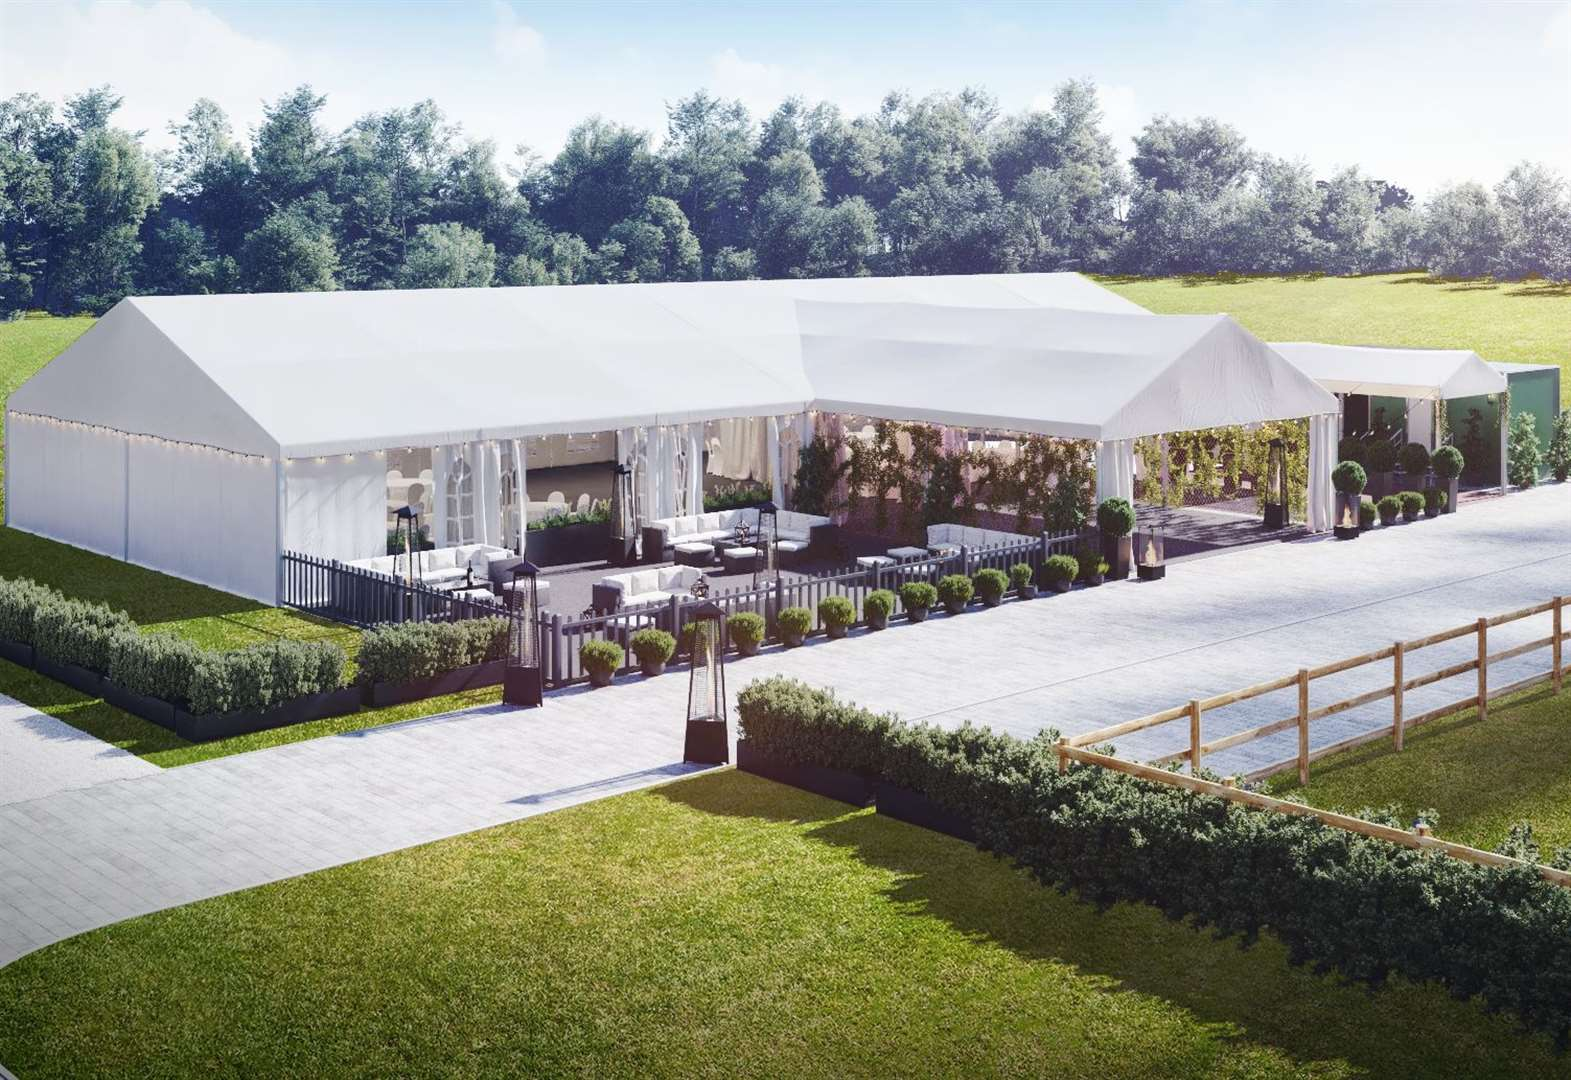 Luxury hotel's new £200k outdoor wedding venue